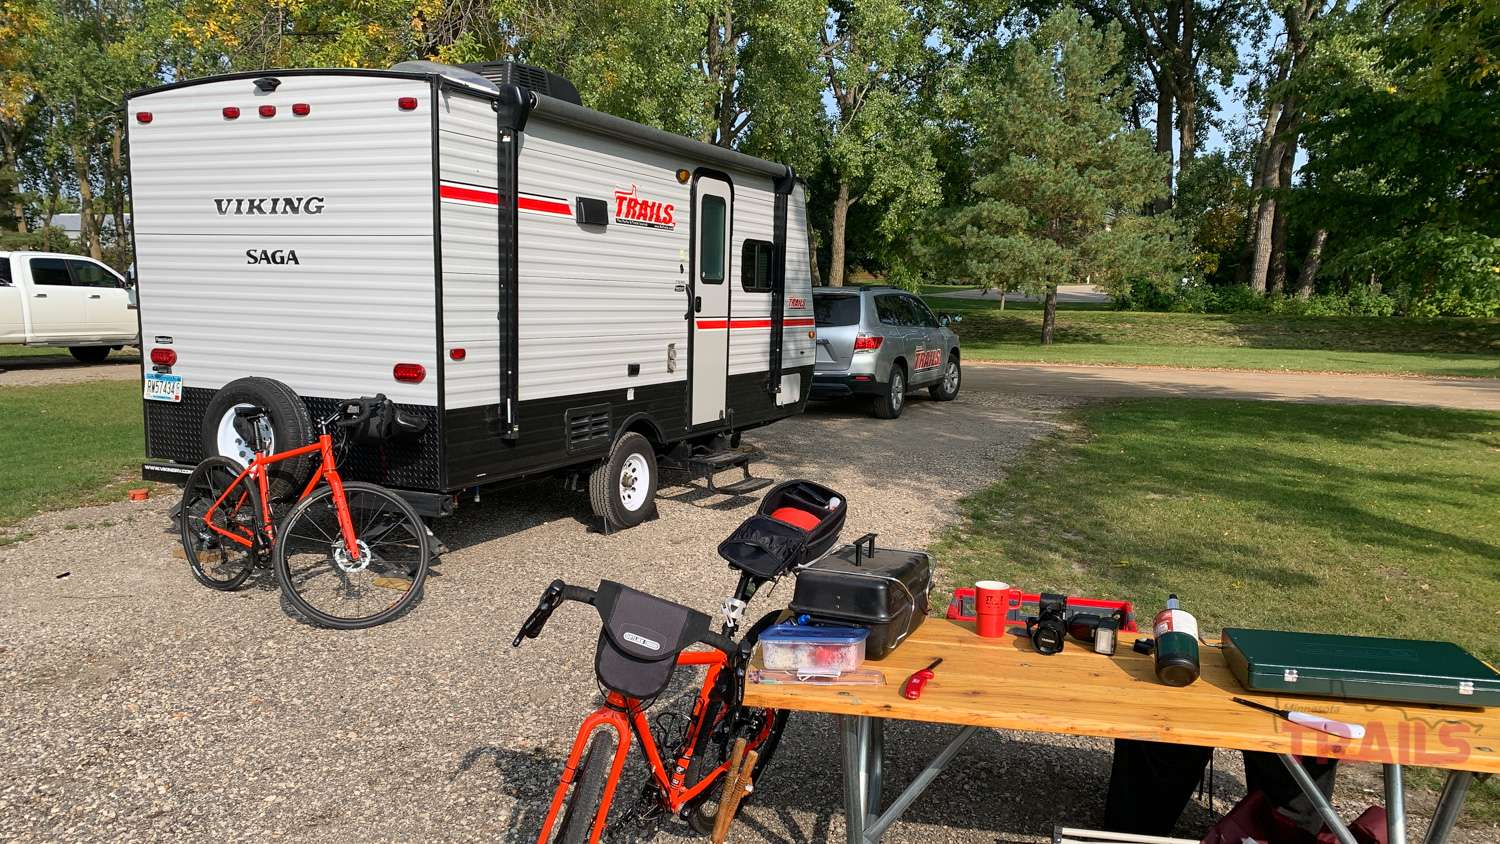 A travel trailer and vehicle in a campsite